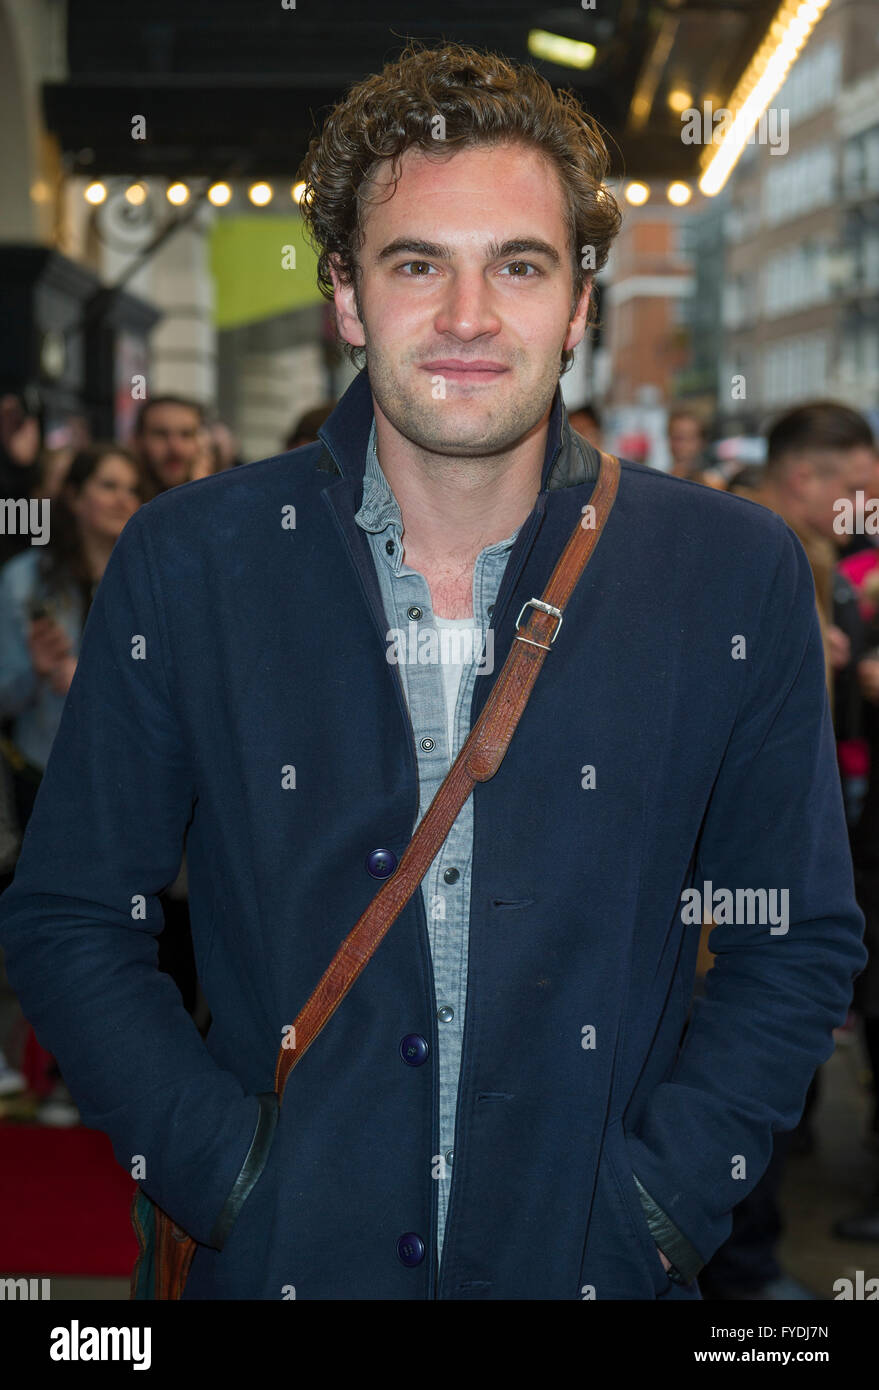 London, UK. 25th April, 2016. Gala Night performance of 'Doctor Faustus' at The Duke Of York's Theatre - Stock Image